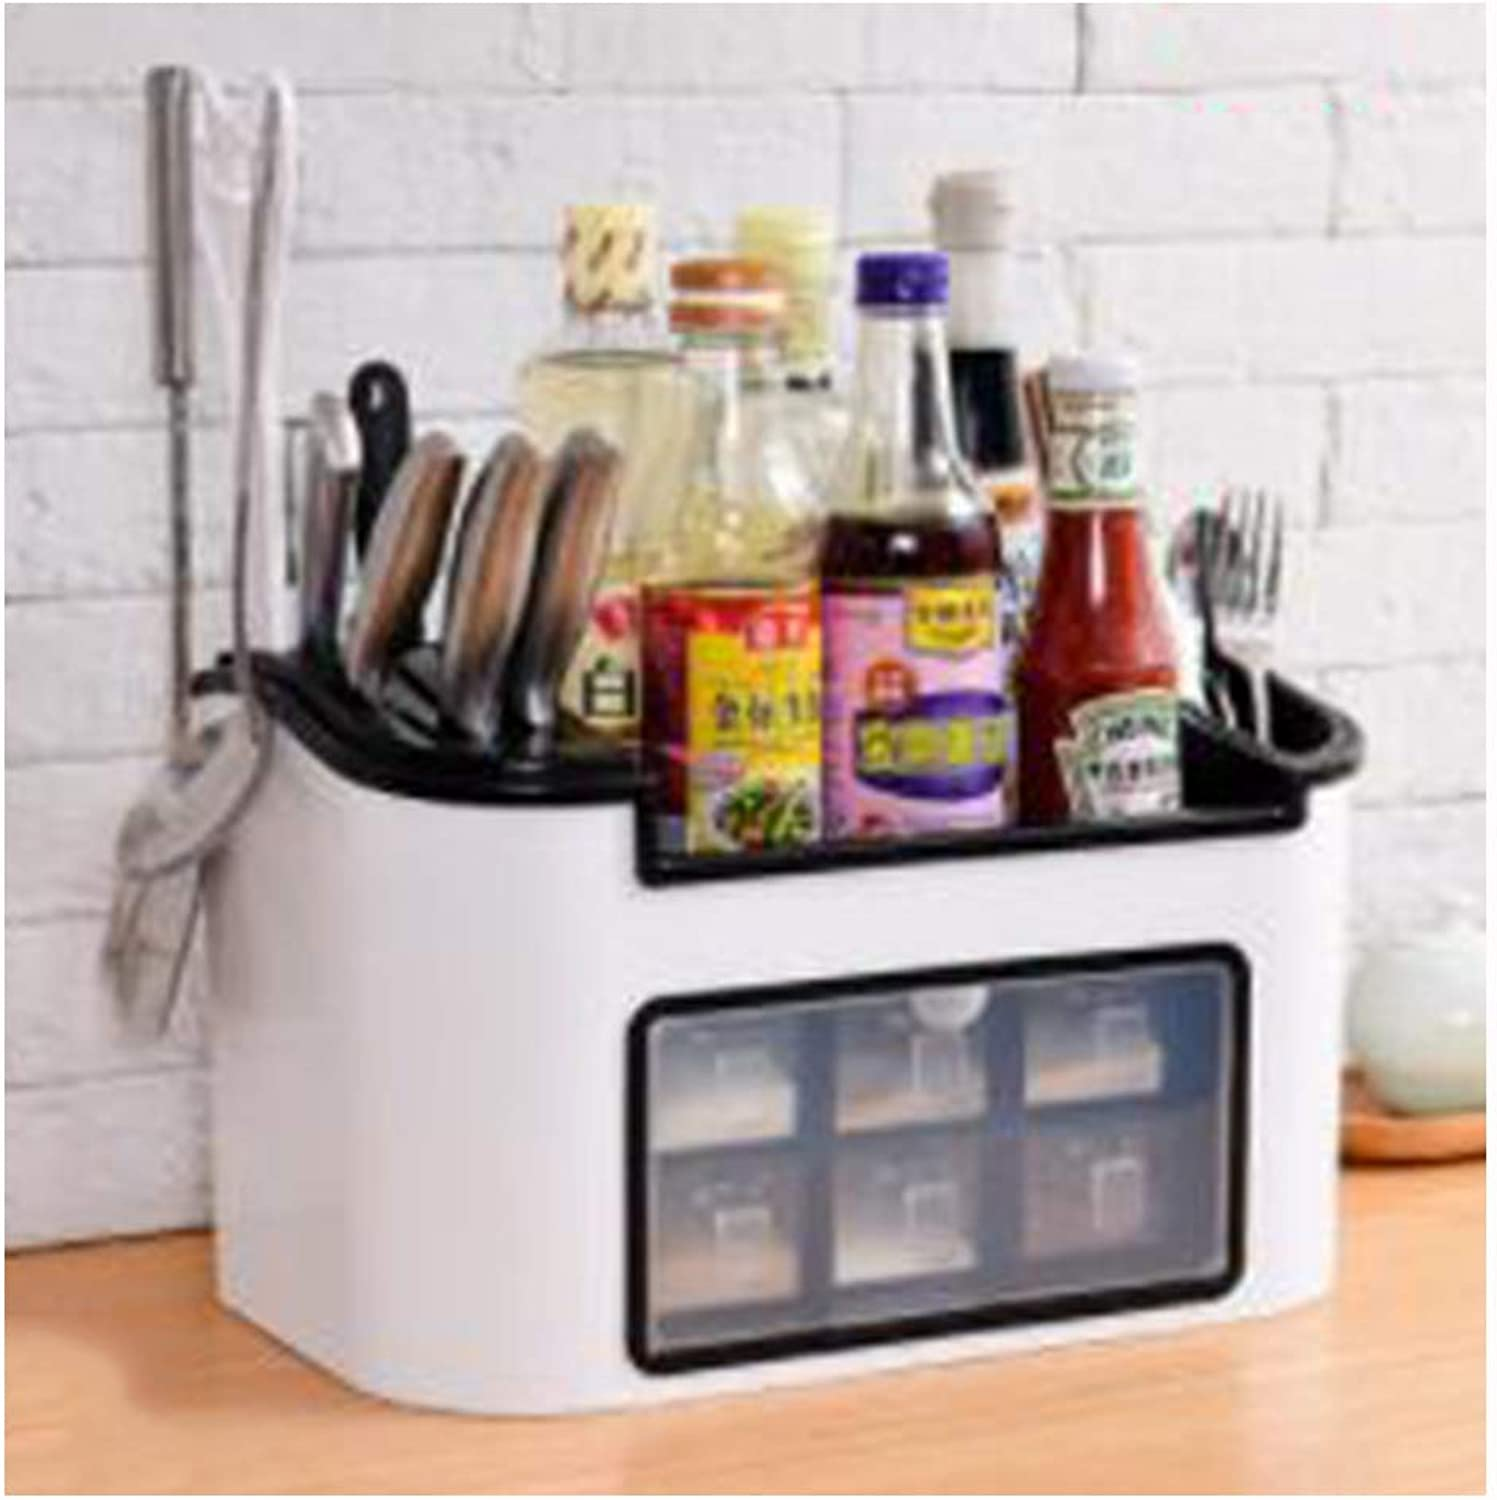 Kitchen Racks Seasoning Storage Racks Seasoning Shelf Chopsticks Seasoning Knife Holder Supplies Box Storage Box,E